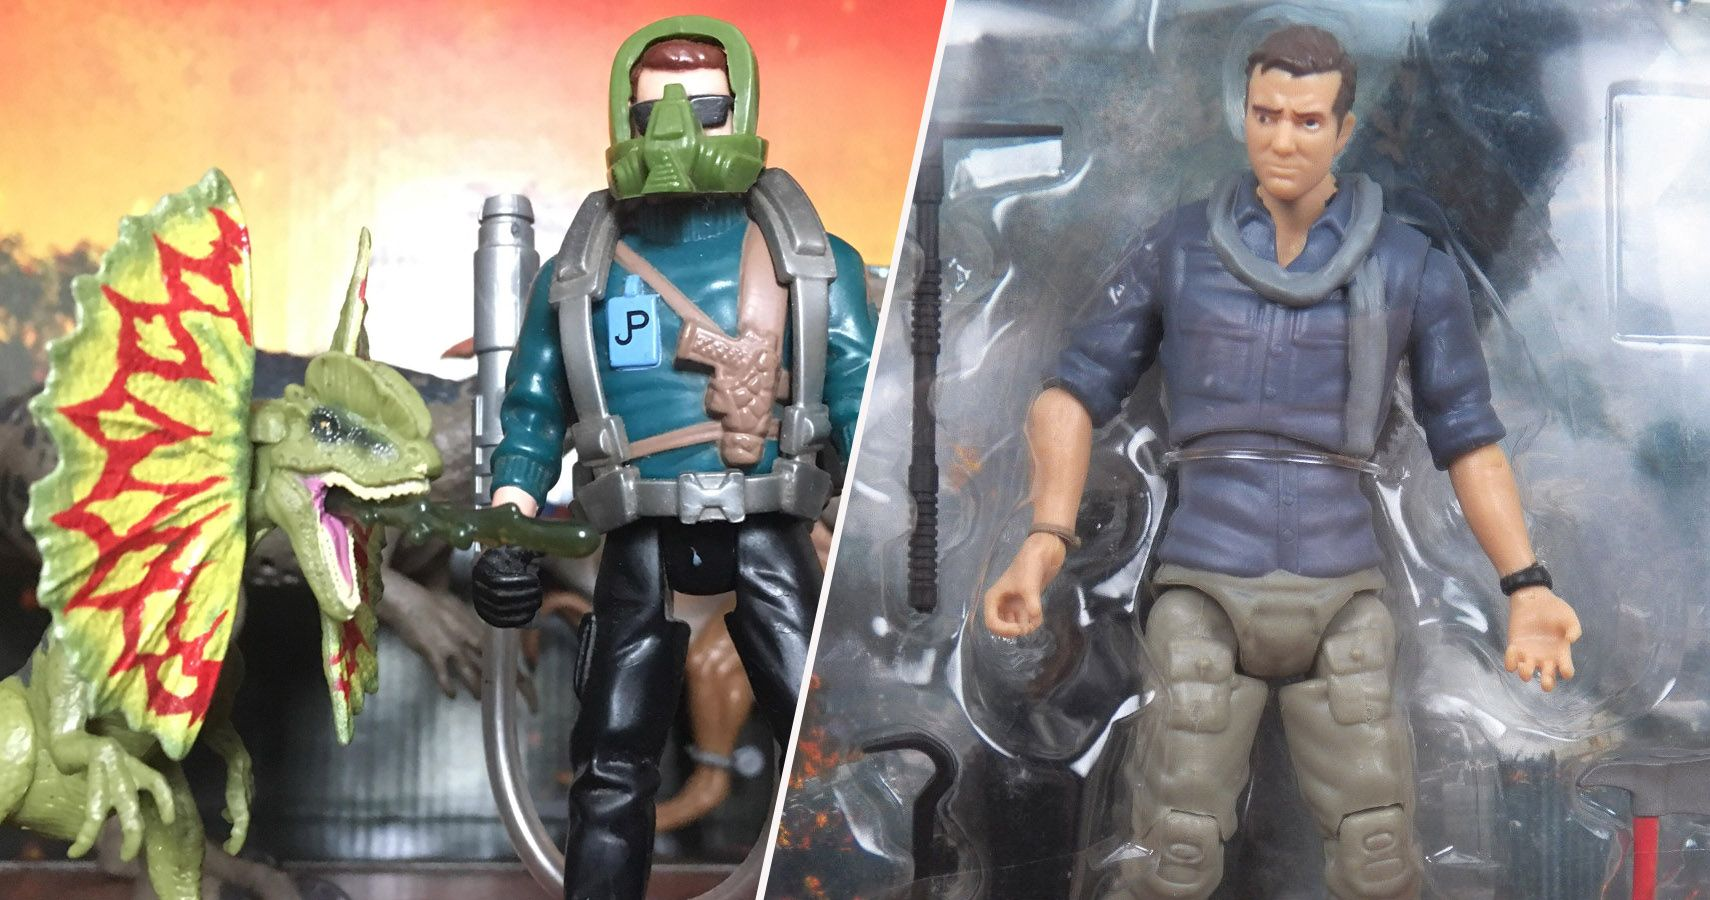 25 Licensed Action Figures That Look Nothing Like The Characters